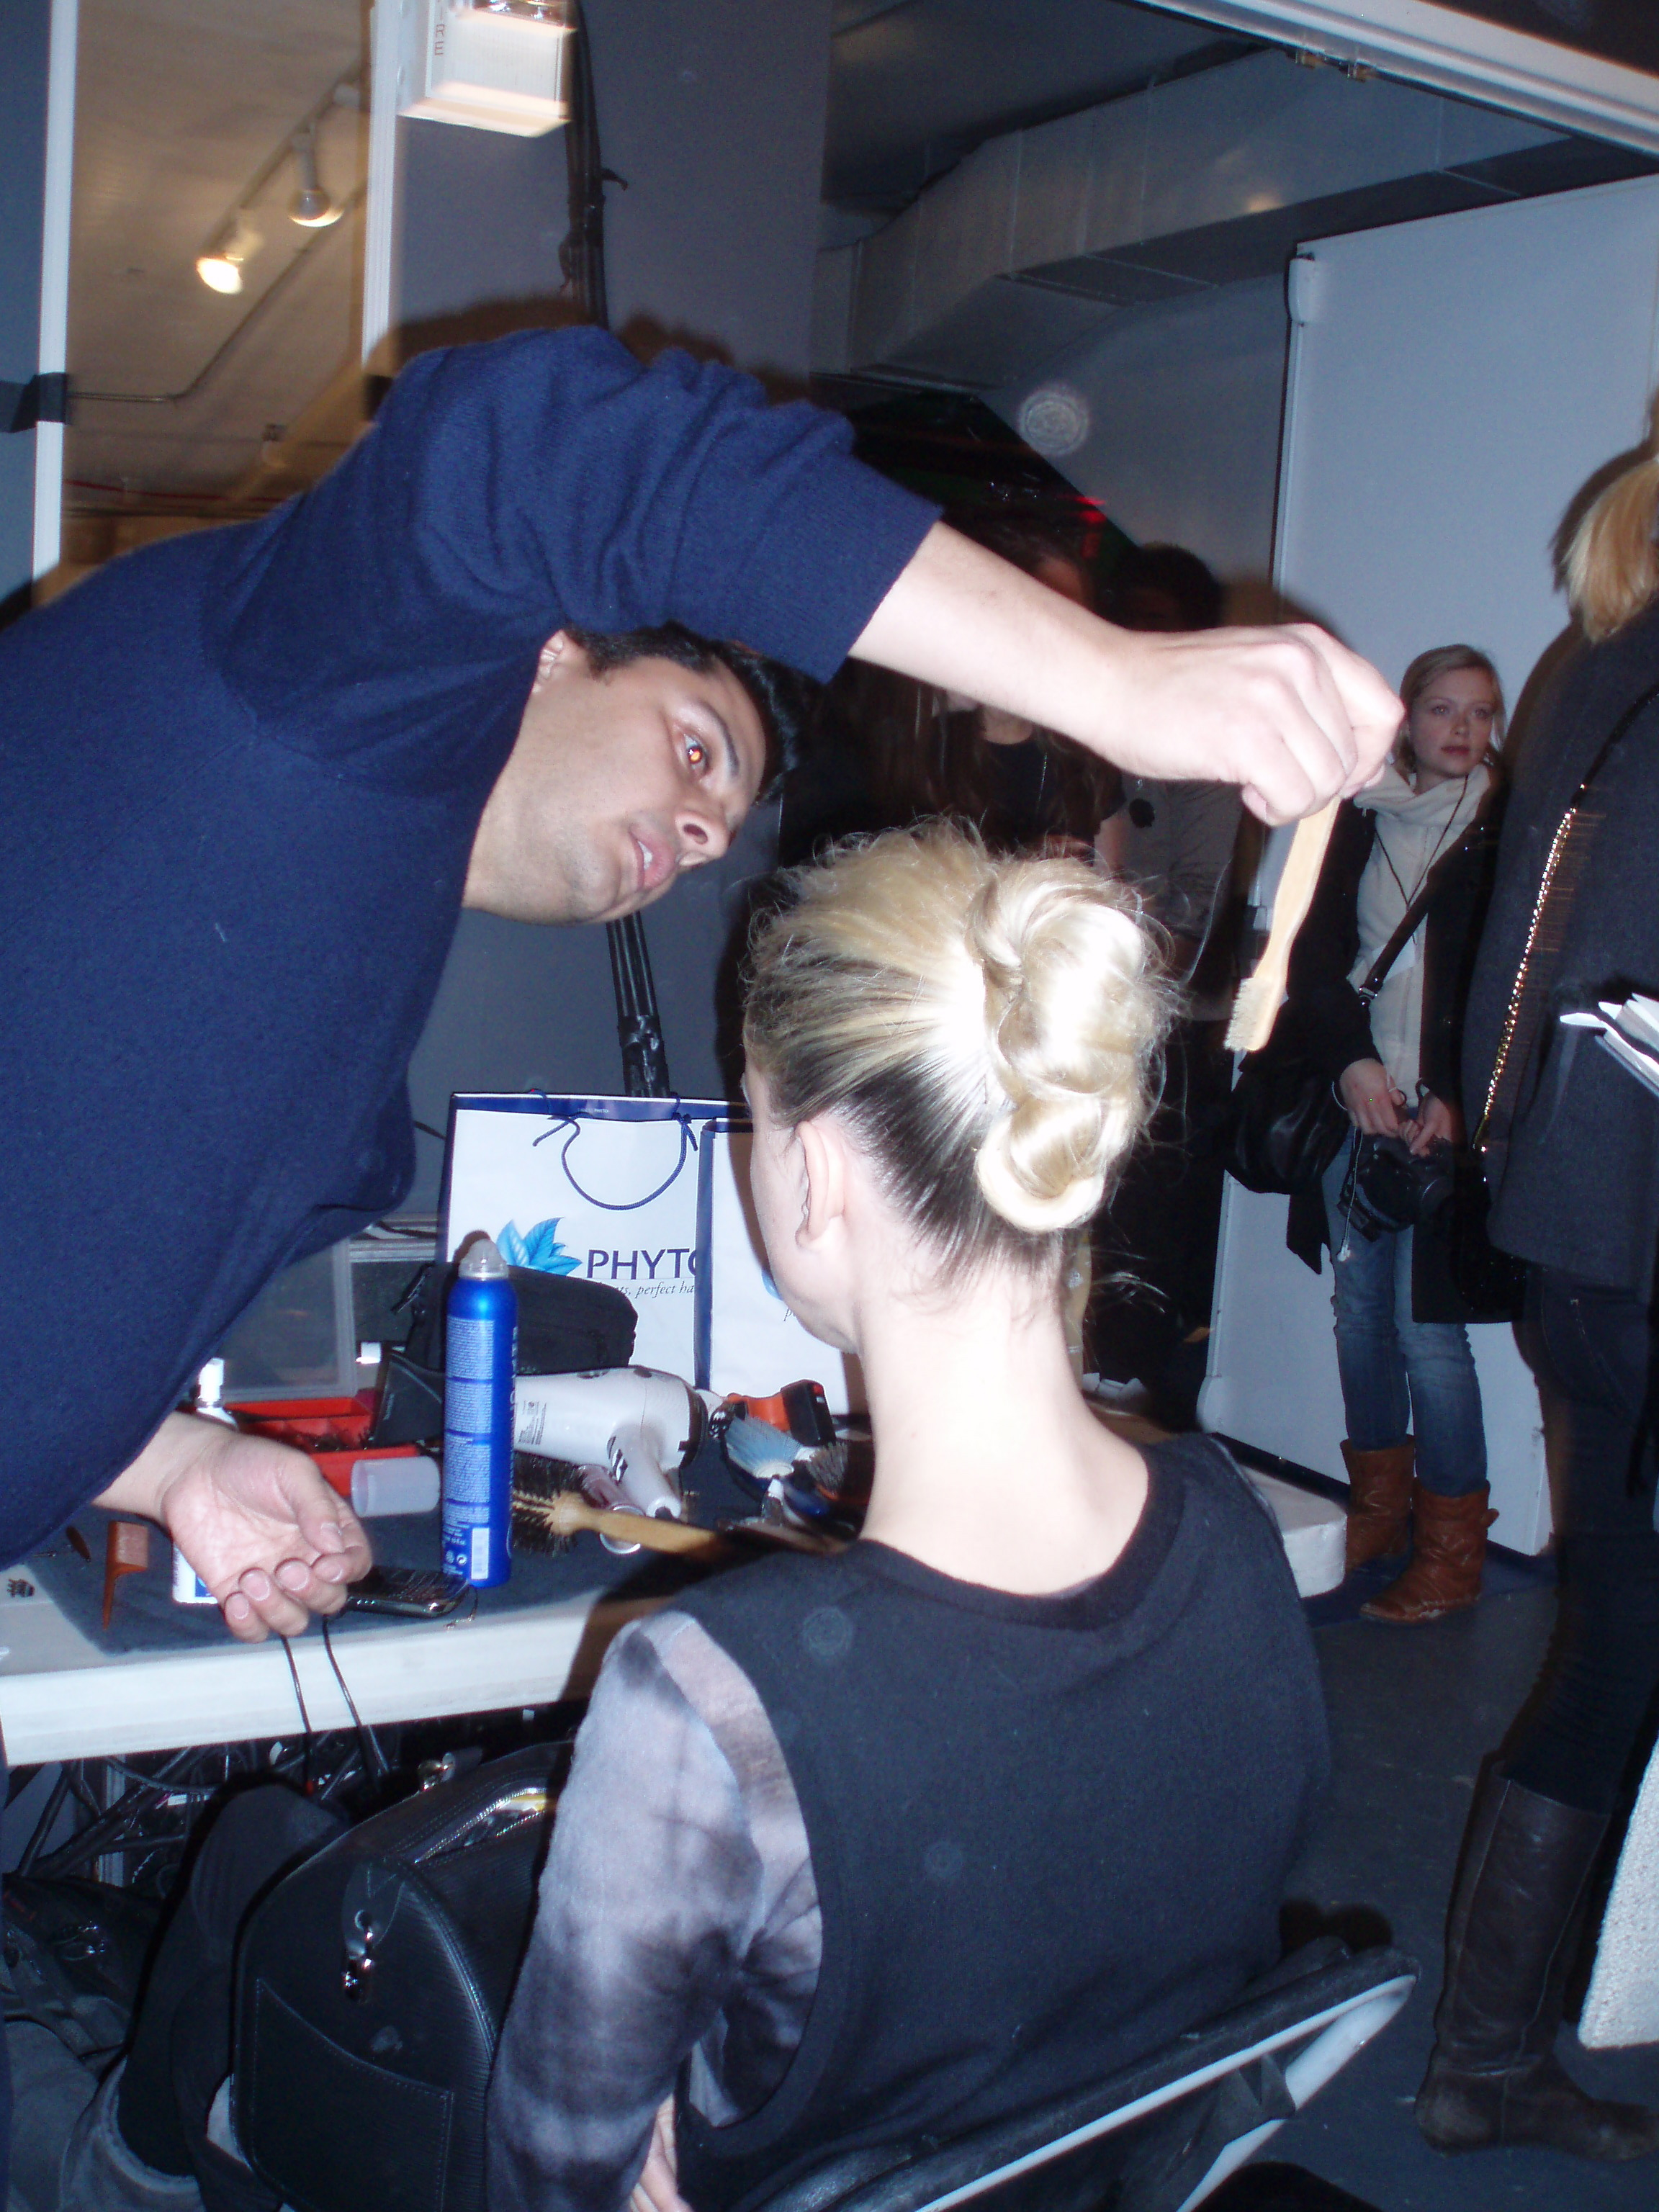 David Cruz for Phyto puts the finishing touches on an updo.